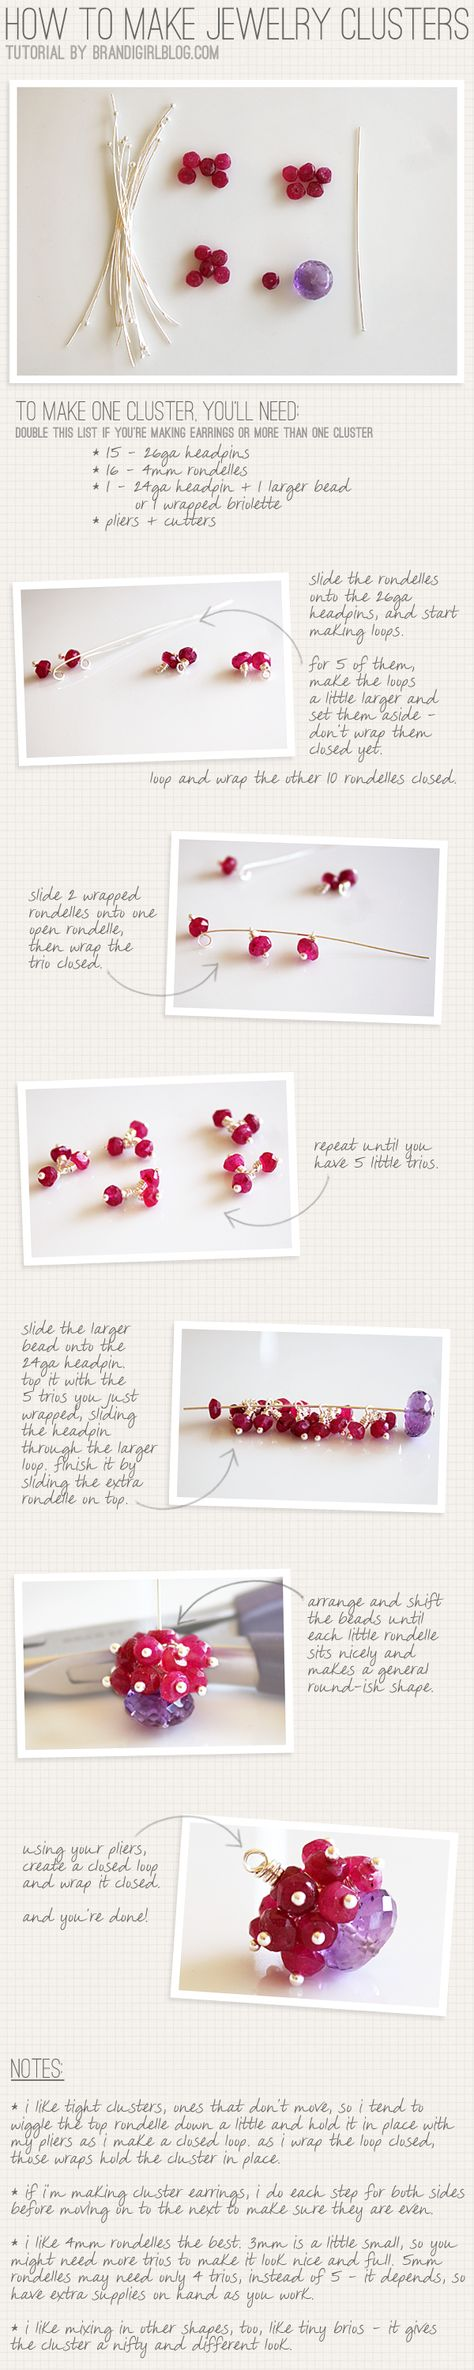 Making Jewelry Clusters